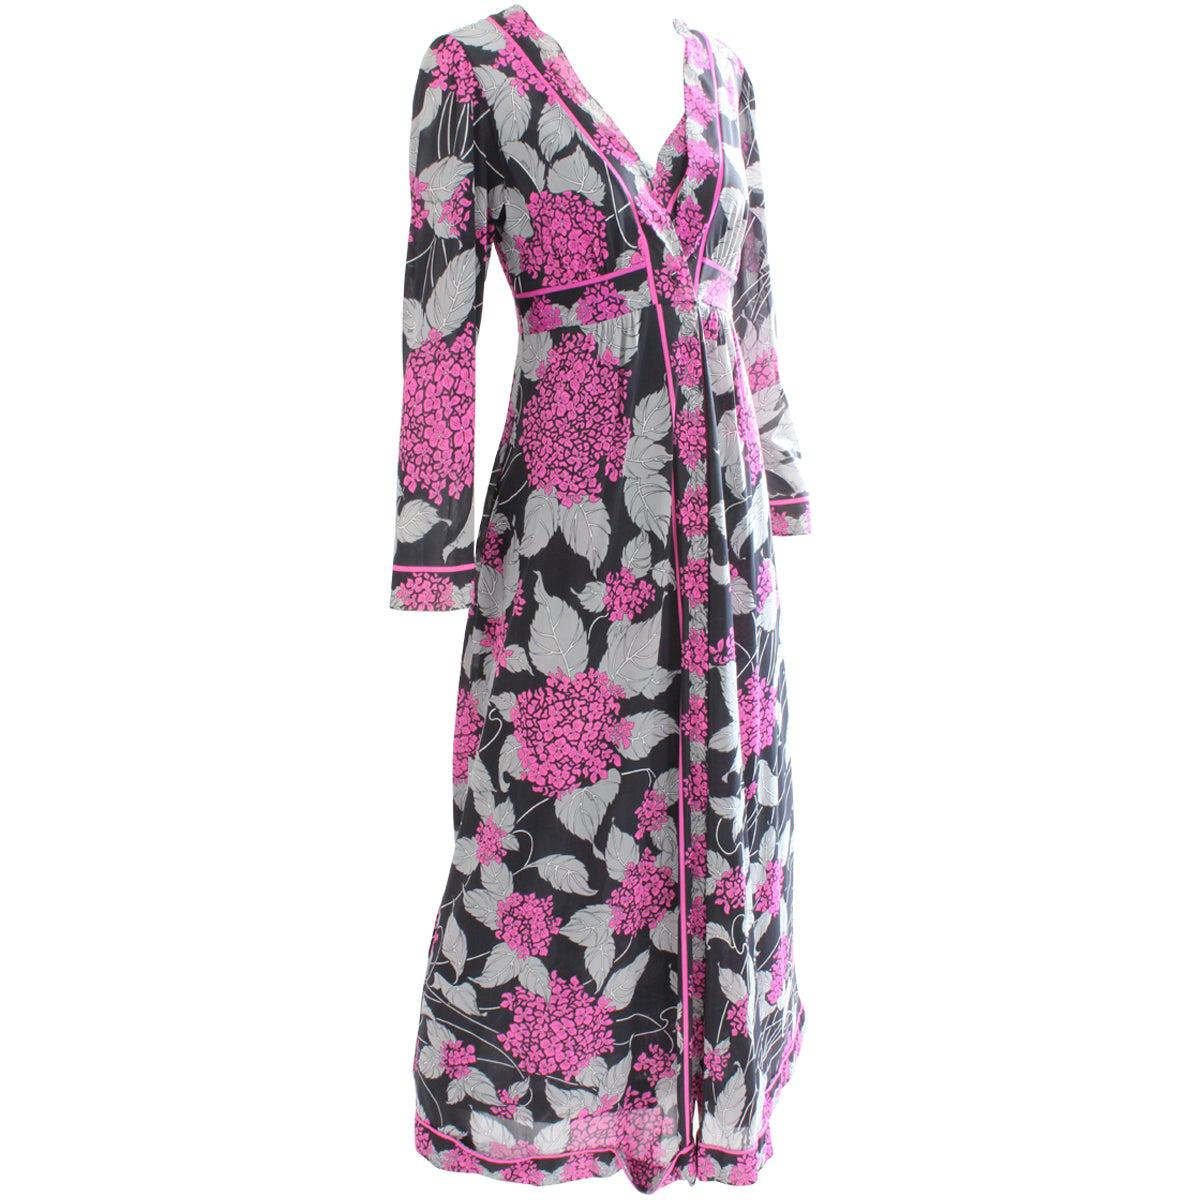 Emilio Pucci Long Nightgown & Matching Robe 2pc Set Abstract Floral Print S/M